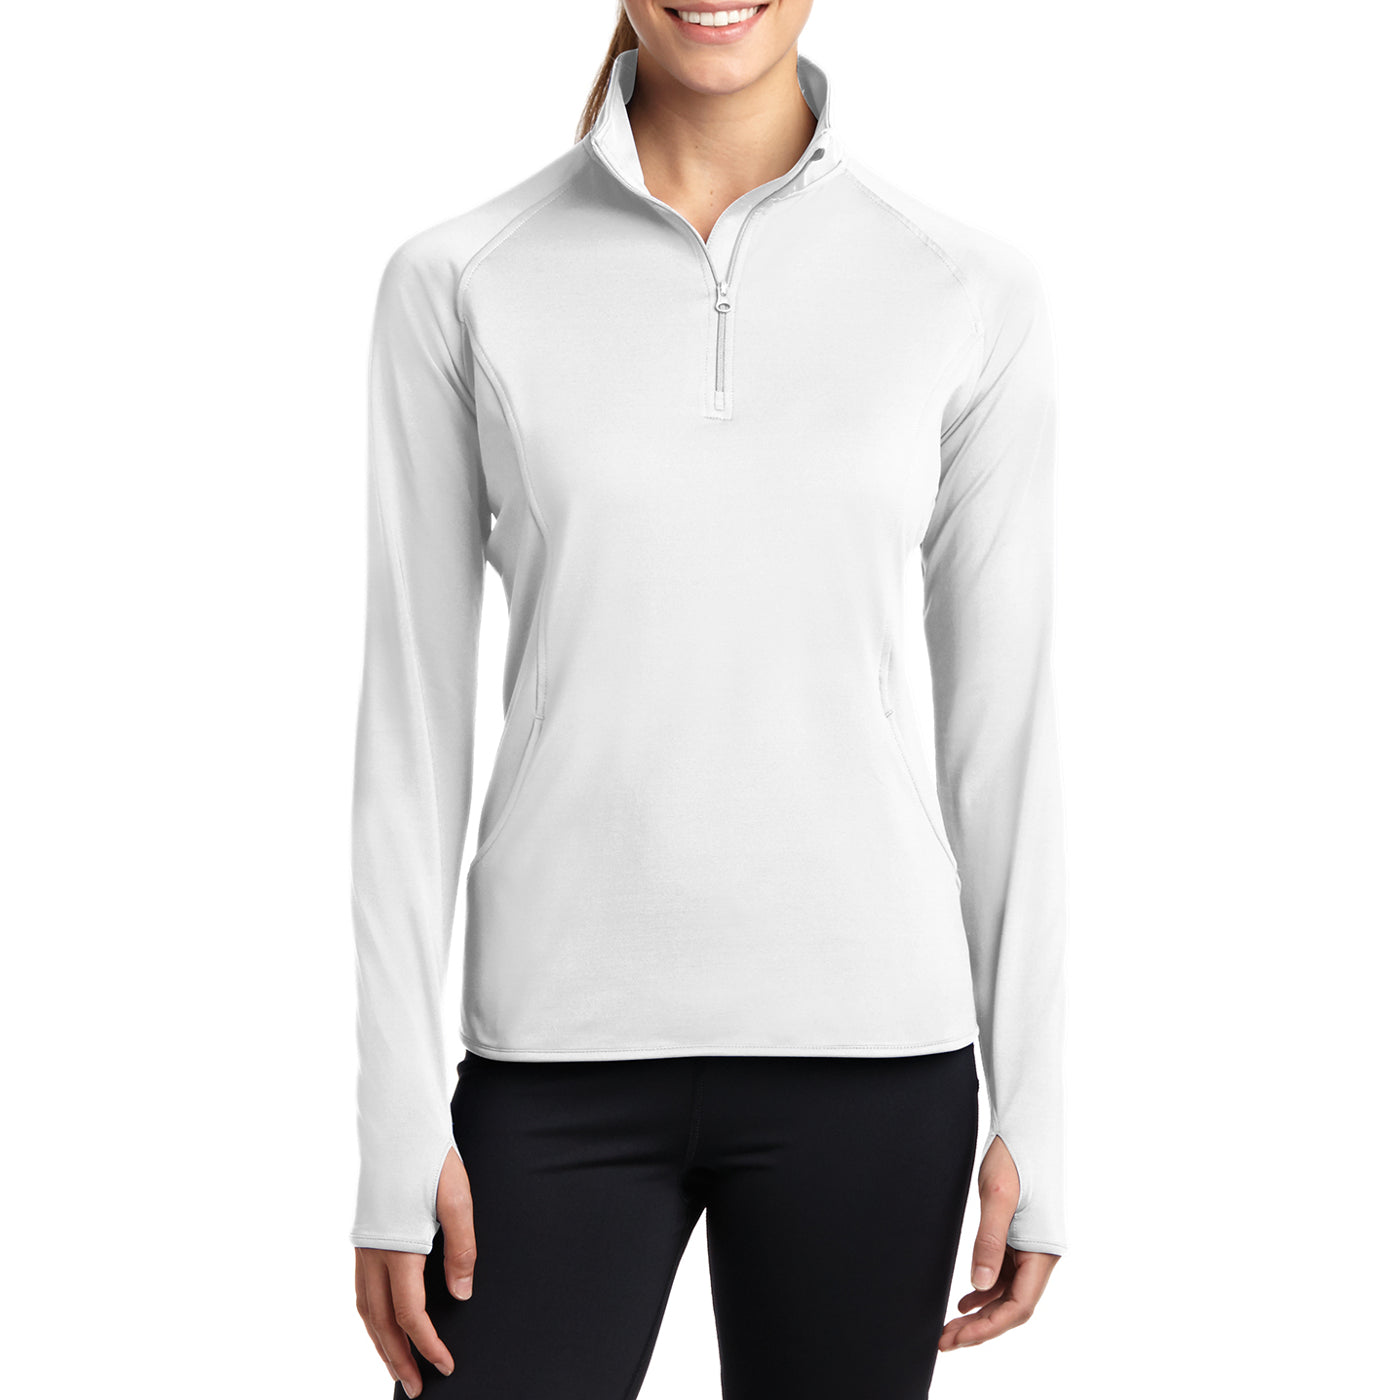 Women's Sport Wick Stretch 1/2 Zip Pullover - White - Front